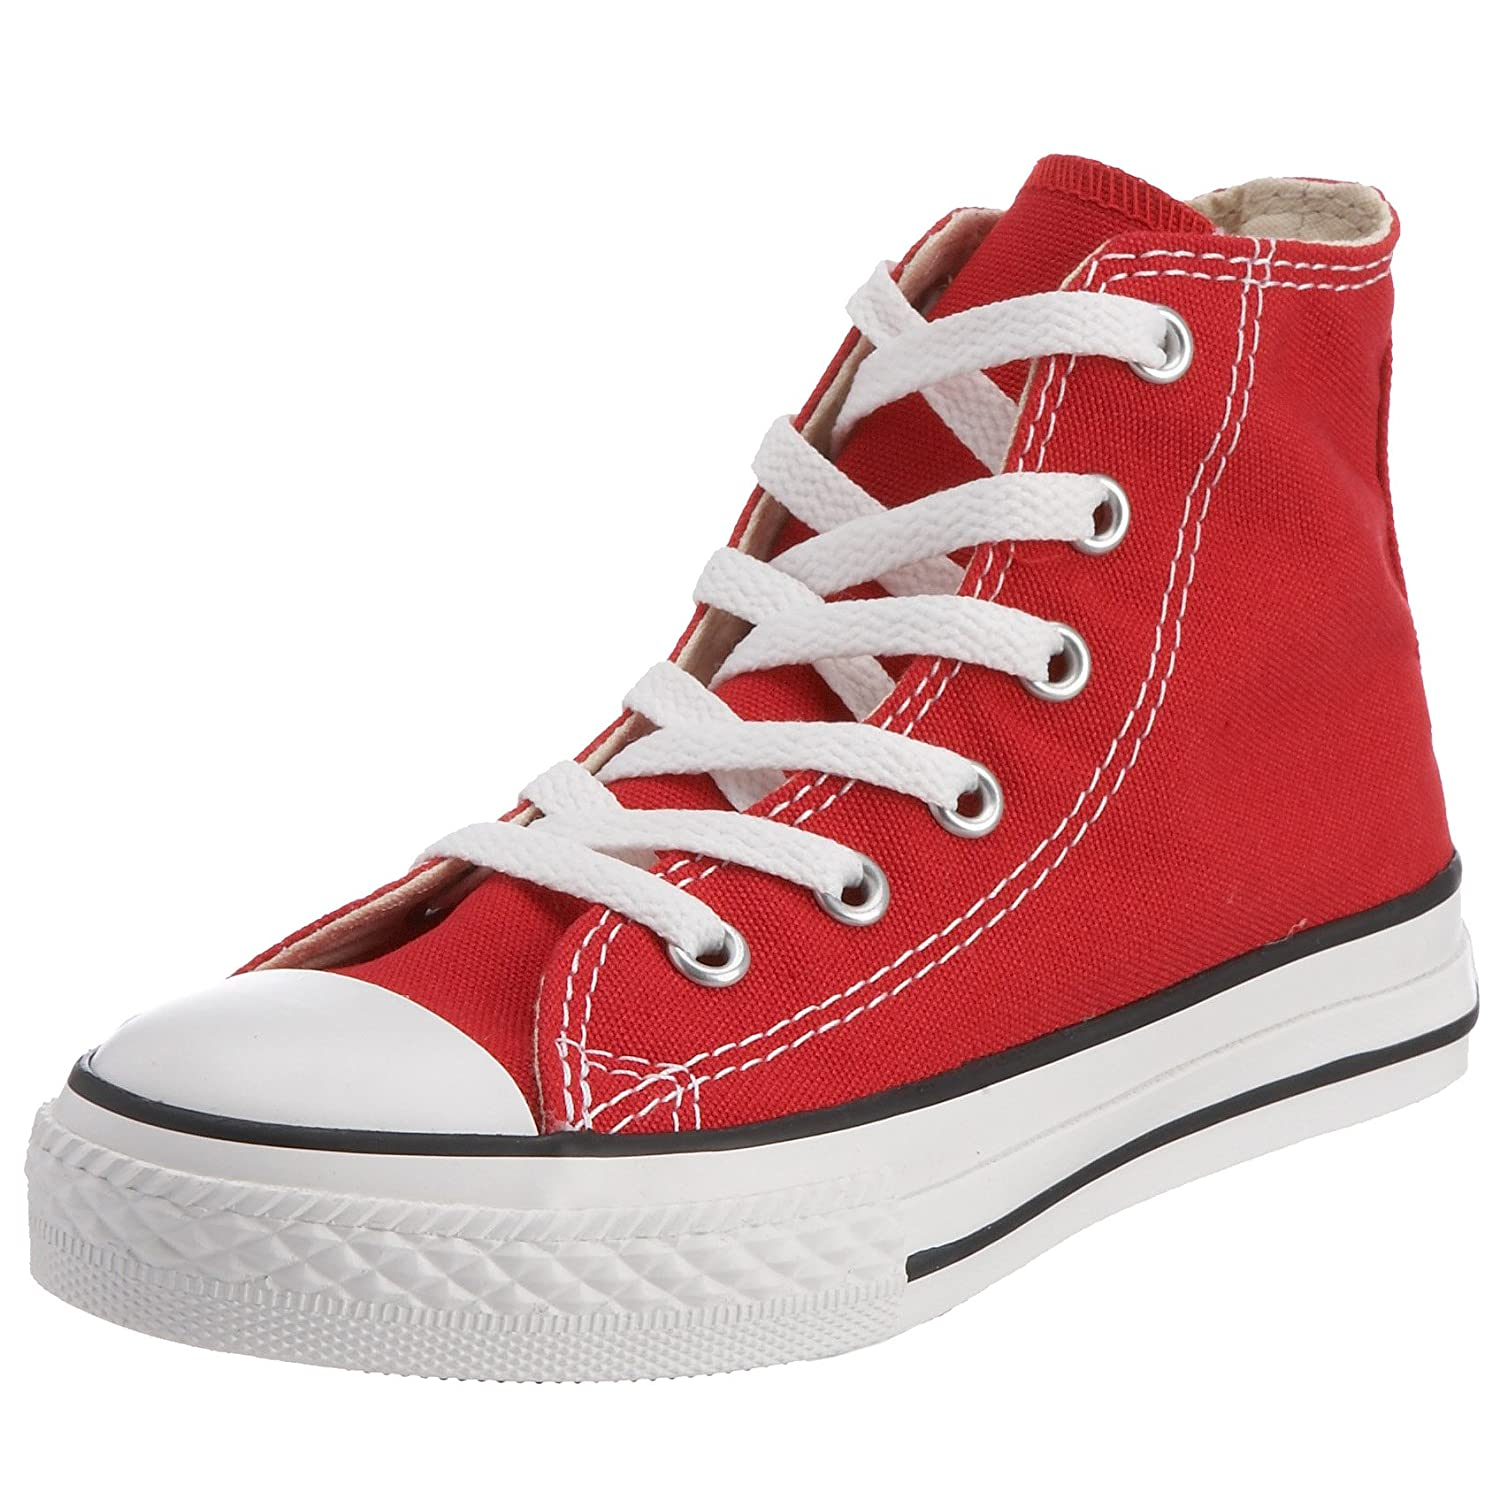 converse youth size 6. amazon.com | converse kids chuck taylor classic hi red sneaker - 13.5 fitness \u0026 cross-training youth size 6 h